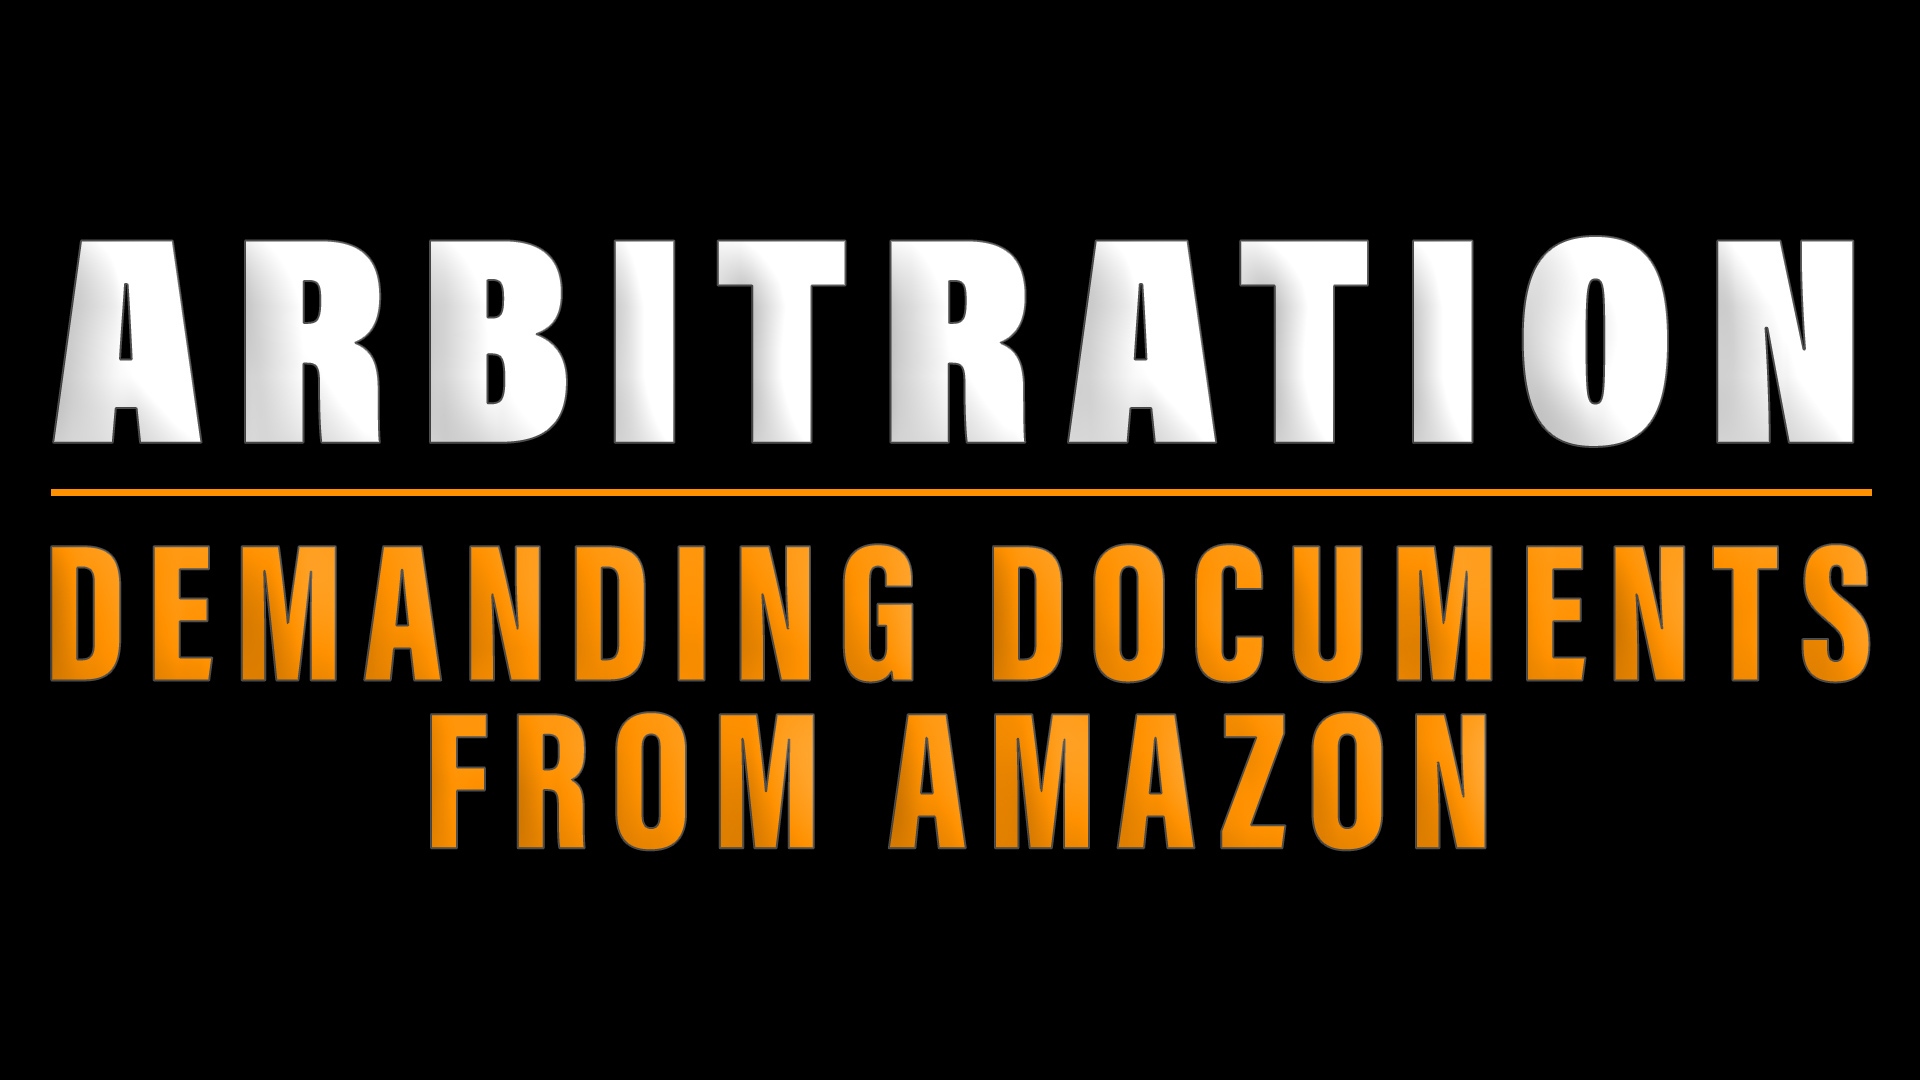 Arbitration and demanding documents from Amazon